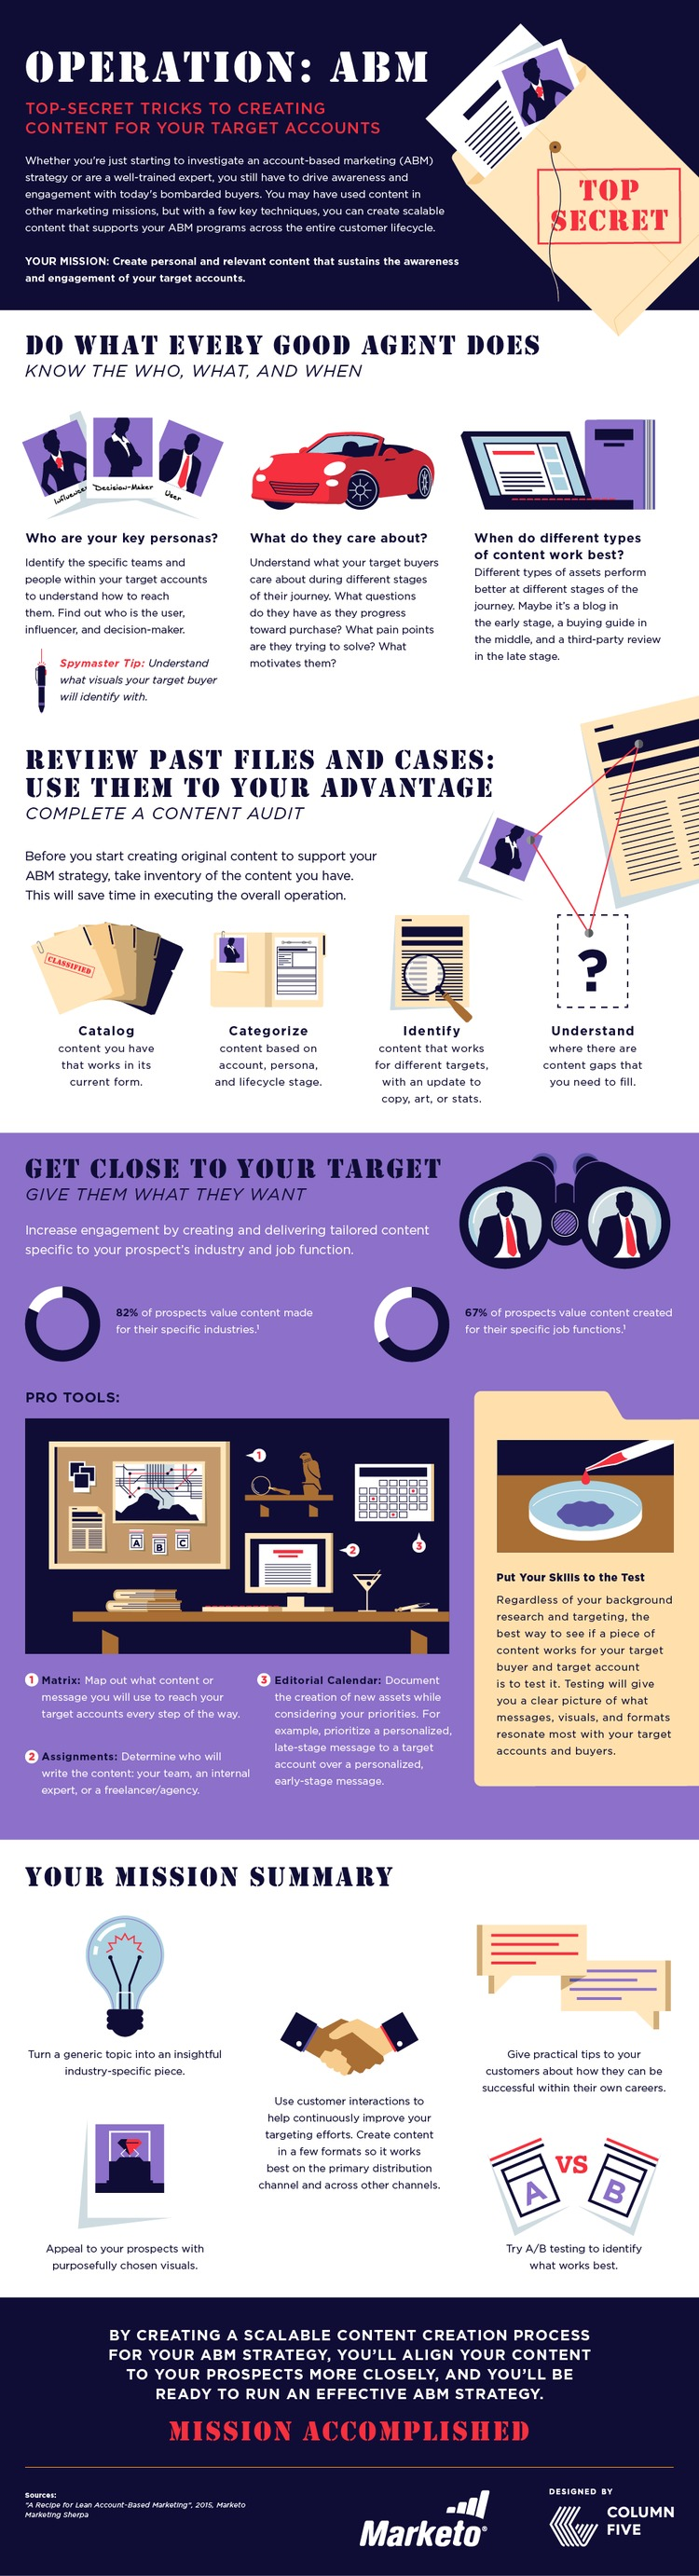 How to Create Content for Your ABM Strategy [Infographic] - Marketo | The MarTech Digest | Scoop.it